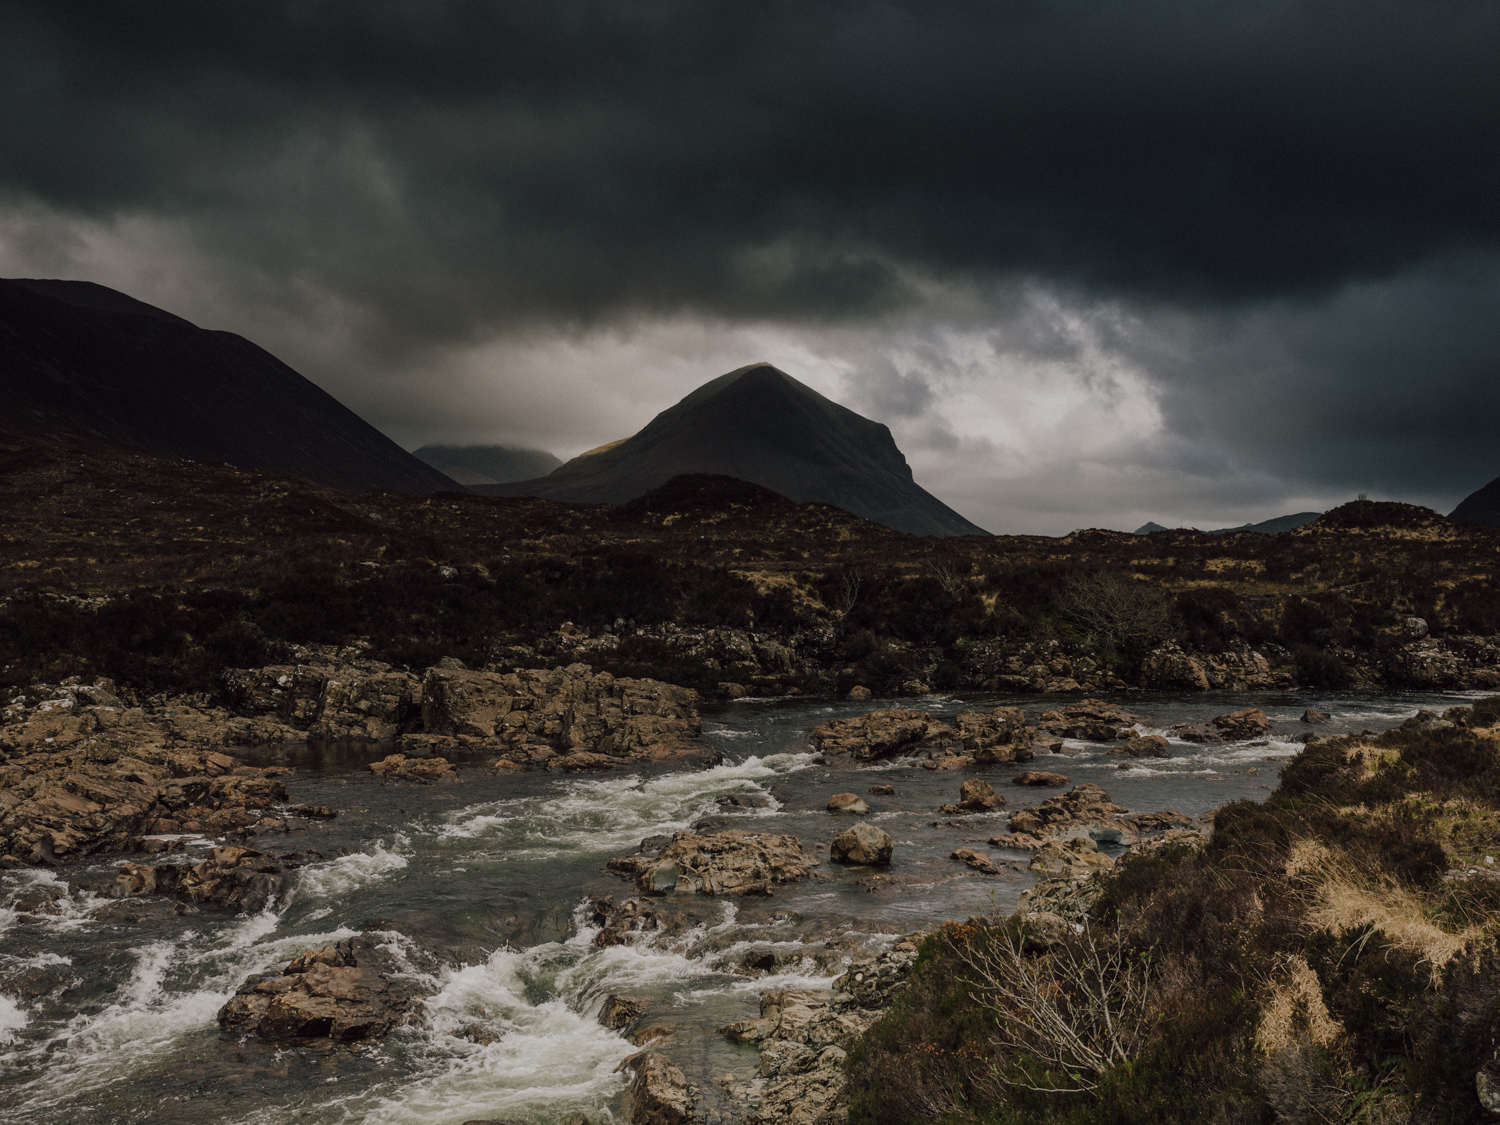 capyture-wedding-photographer-destination-elopement-isle-skye-scotland-393